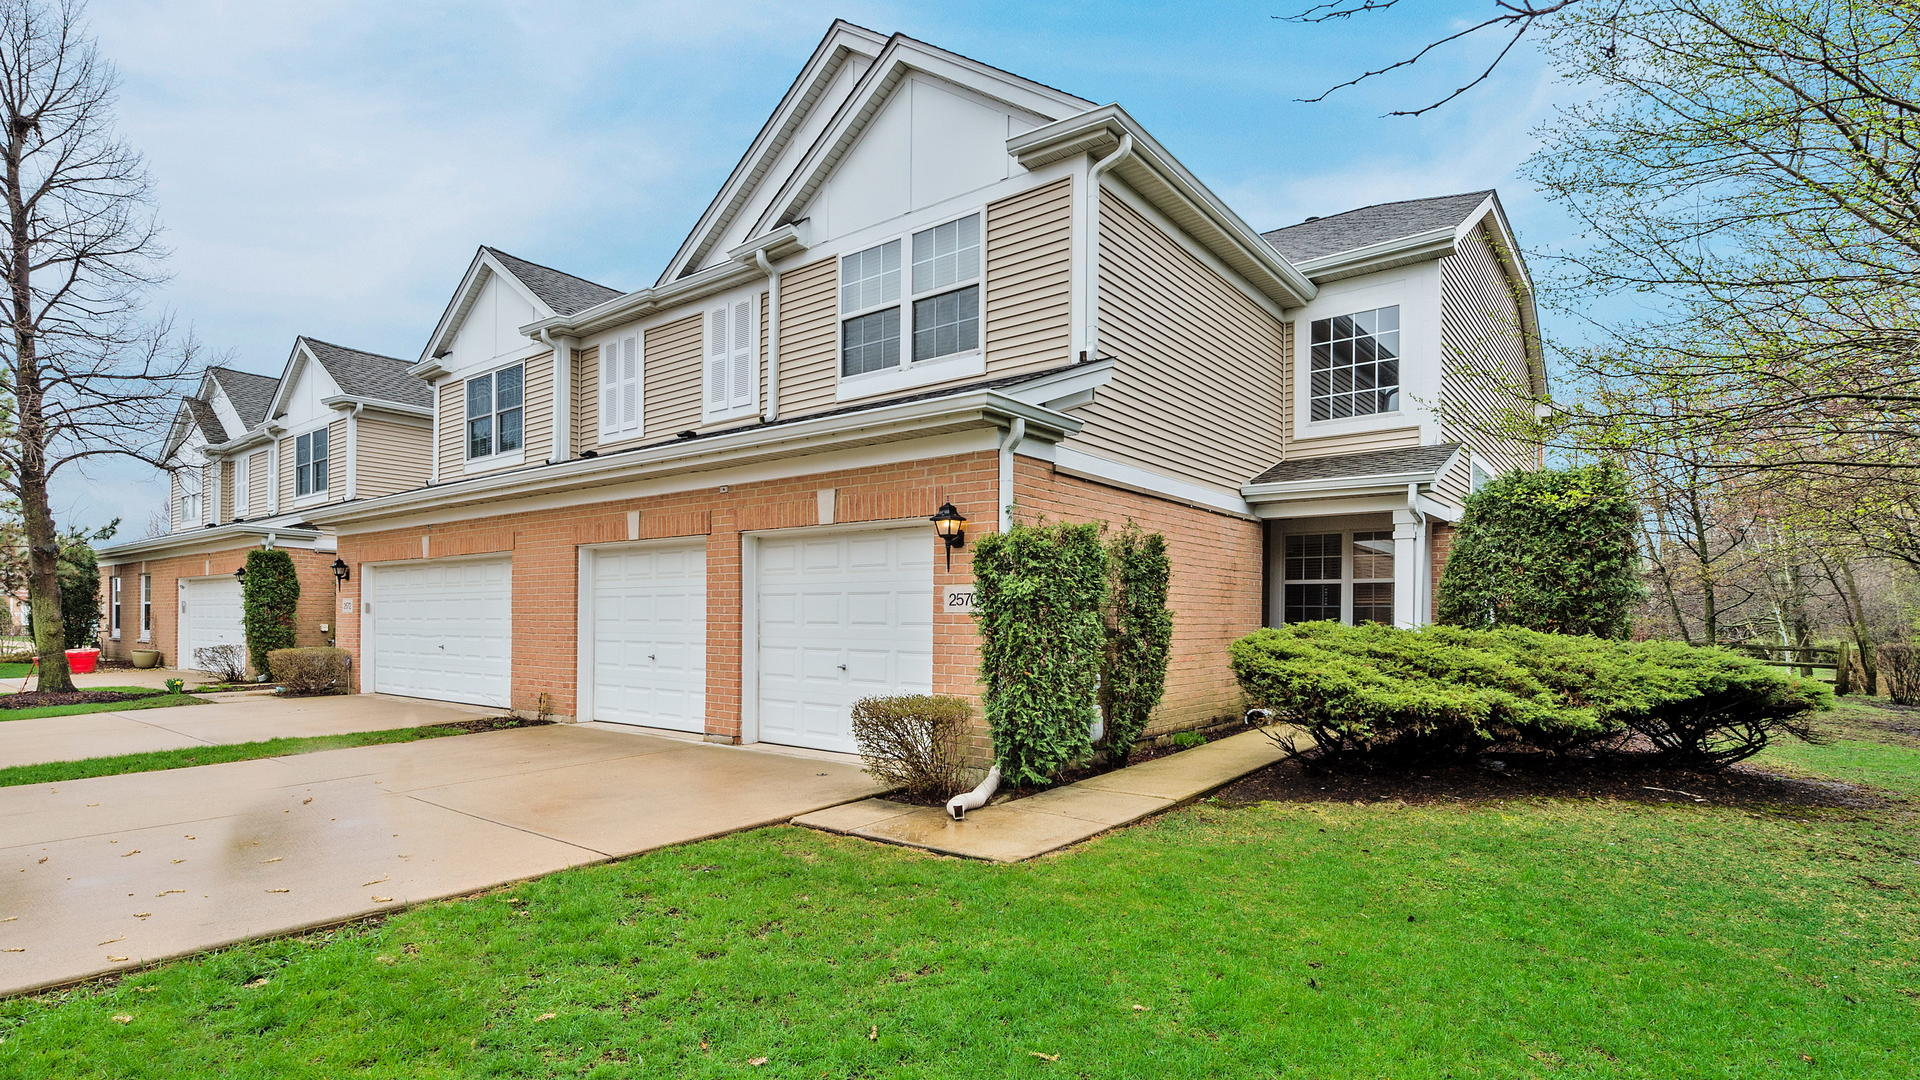 2570 Camberley ,Westchester, Illinois 60154